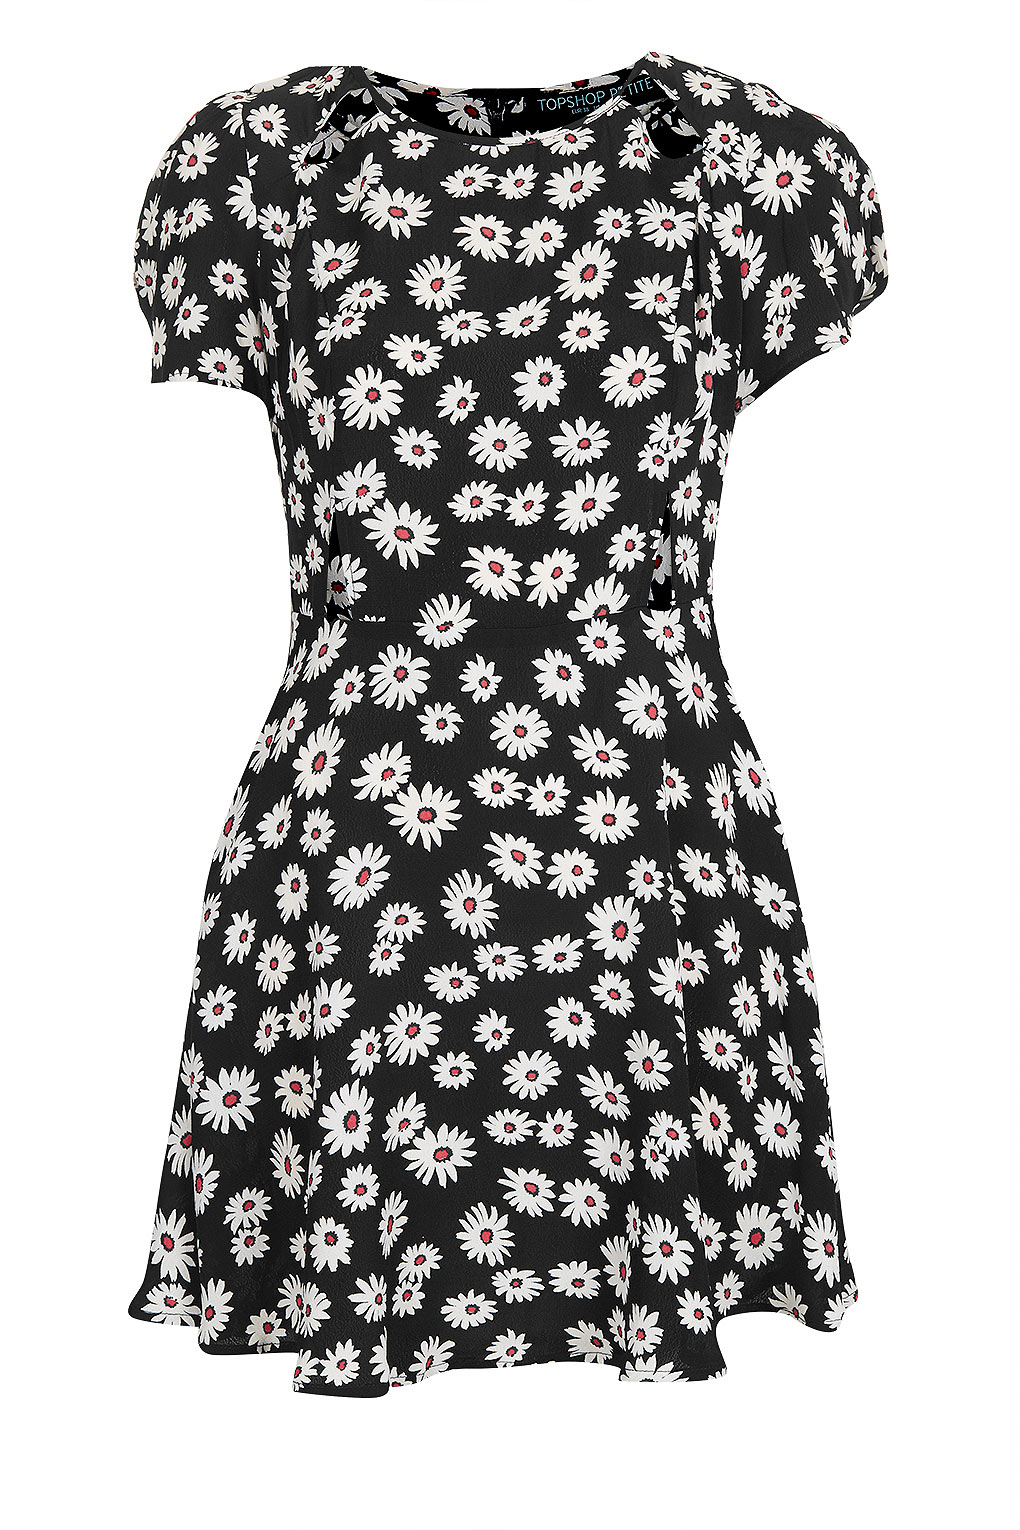 Lyst Topshop Petite Daisy Print Dress In Black